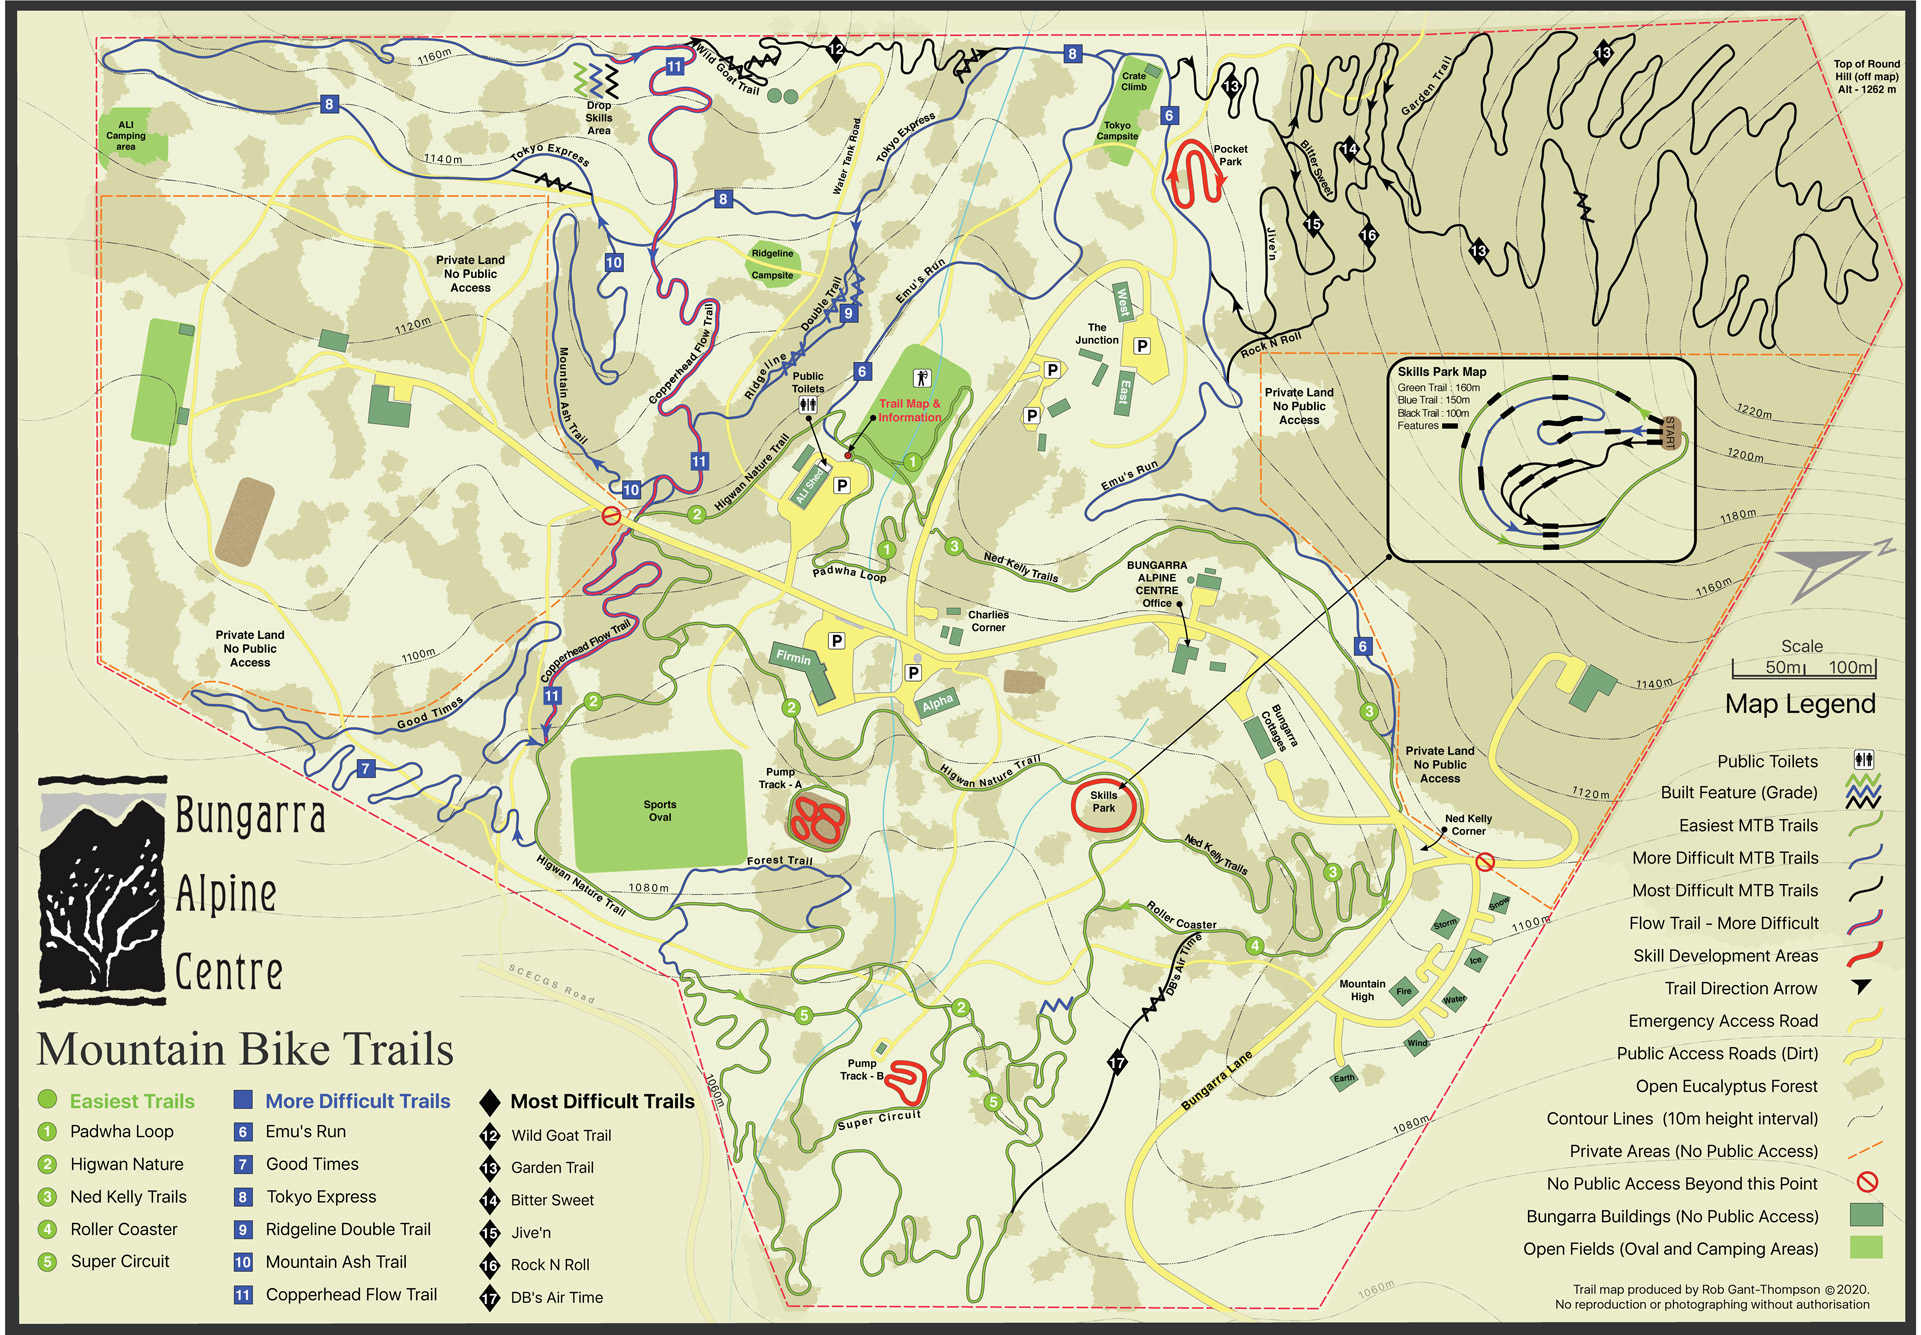 BAC-trail-map-21092020